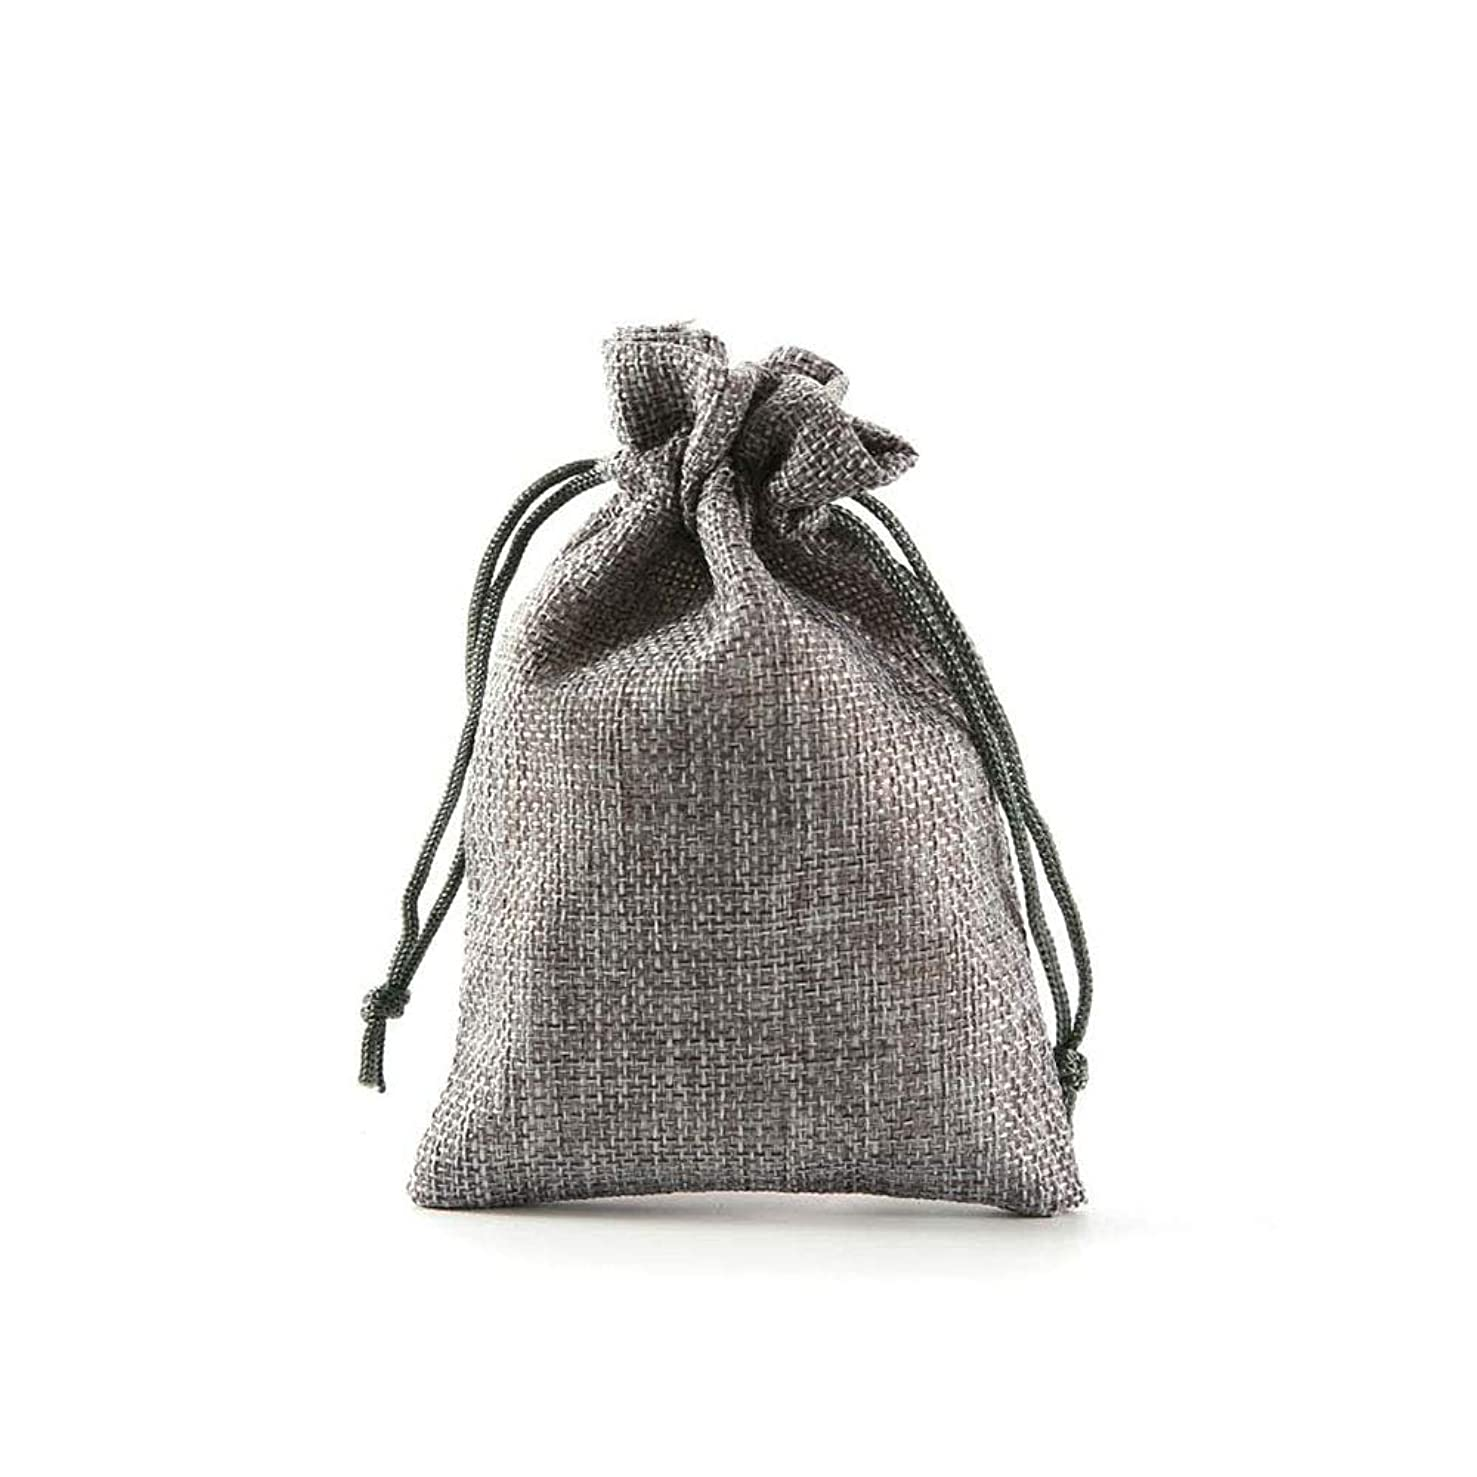 HDHAO 20 pcs Drawstring Gift Bags, Ideal Storage Bags, Storage of Jewelry, Cosmetics, Gifts, Candy, Coins, Plant Seeds, Spices, etc. 10 Colors (Silver Gray)